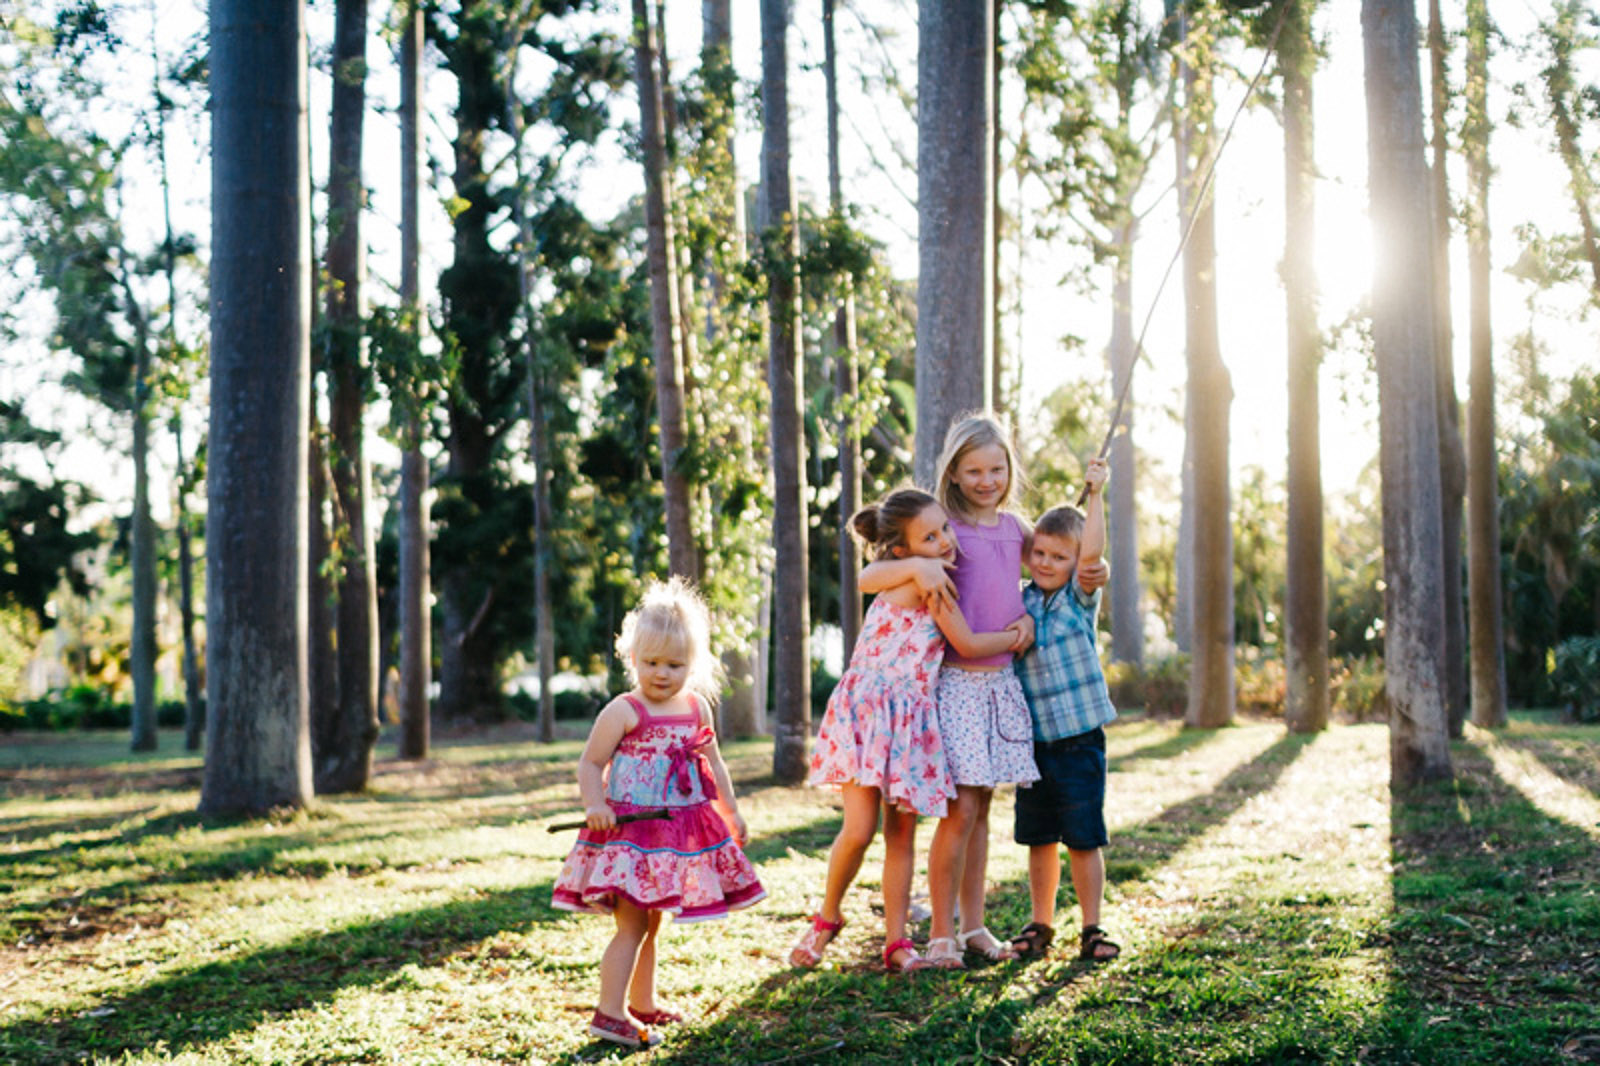 backlit-picture-of-kids-playing-in-the-trees-by-jayne-cho